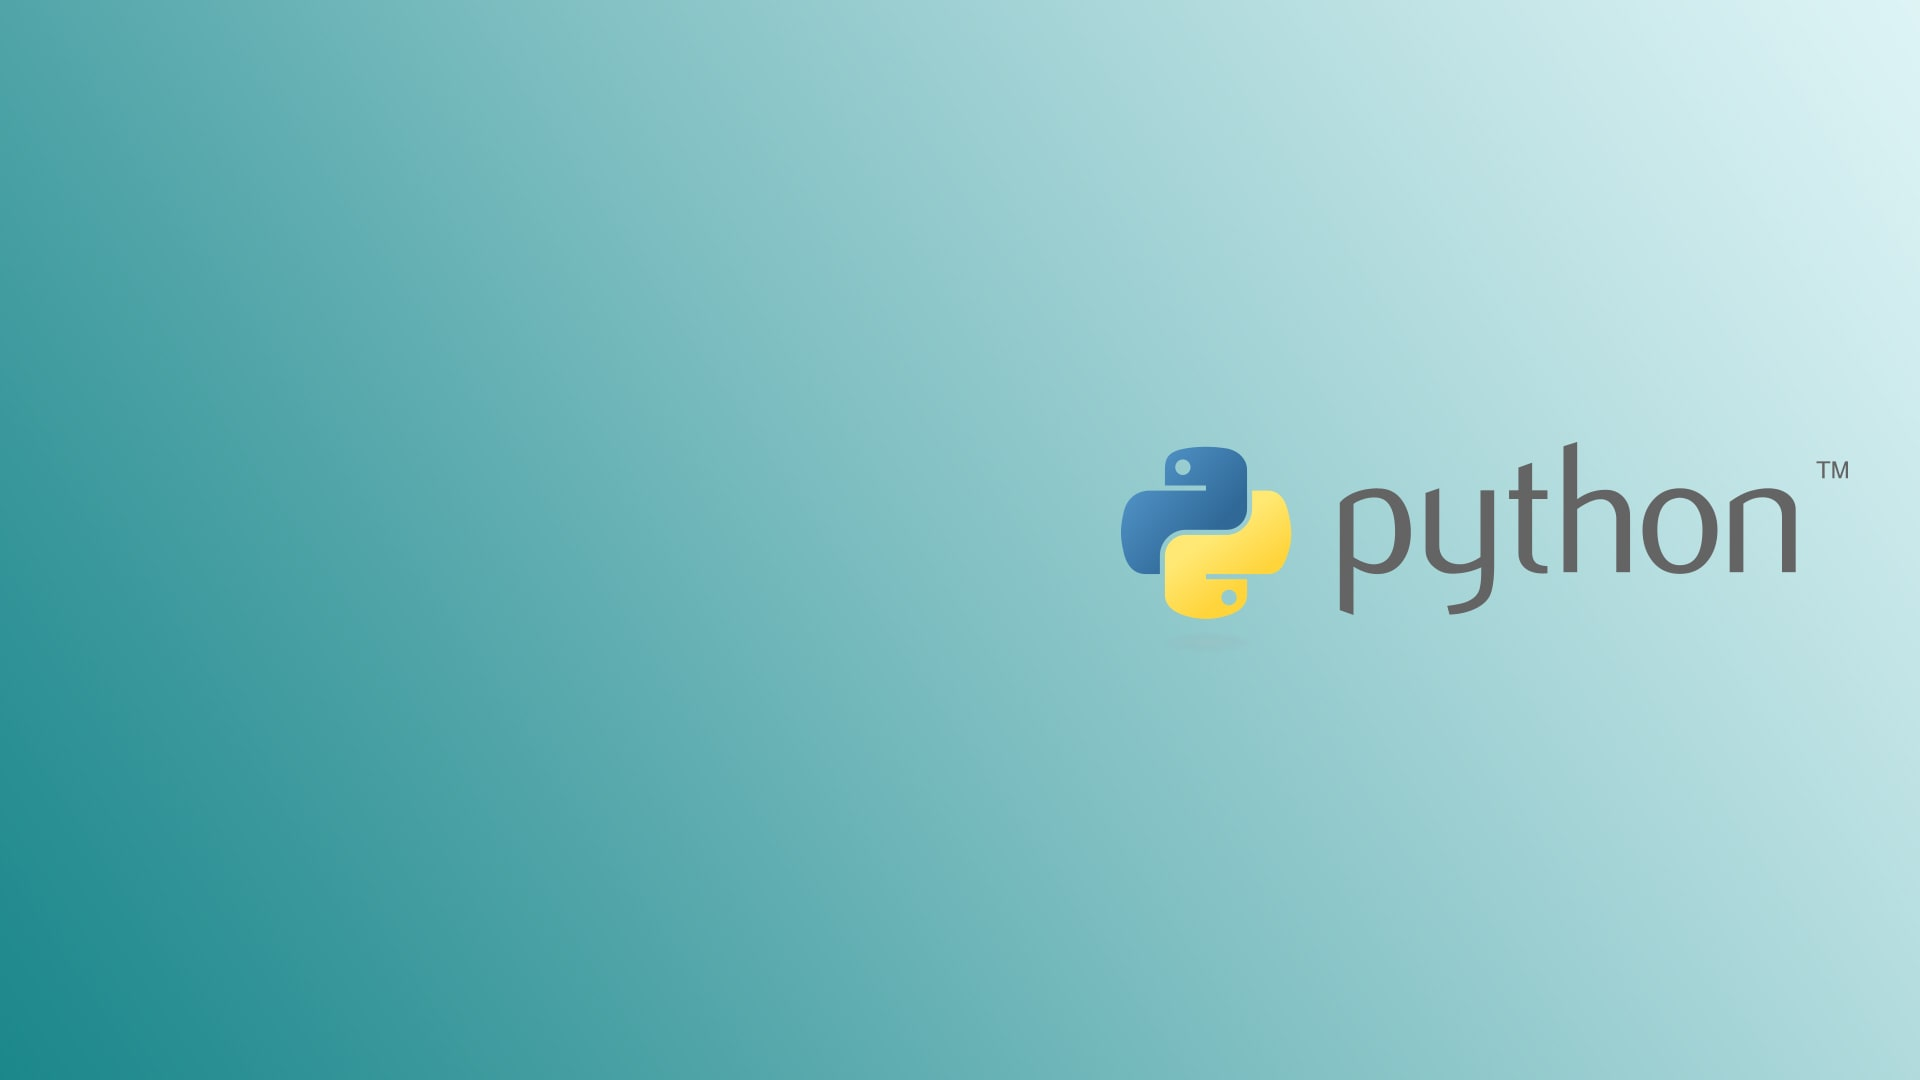 What Does the Python Programming Language Do?